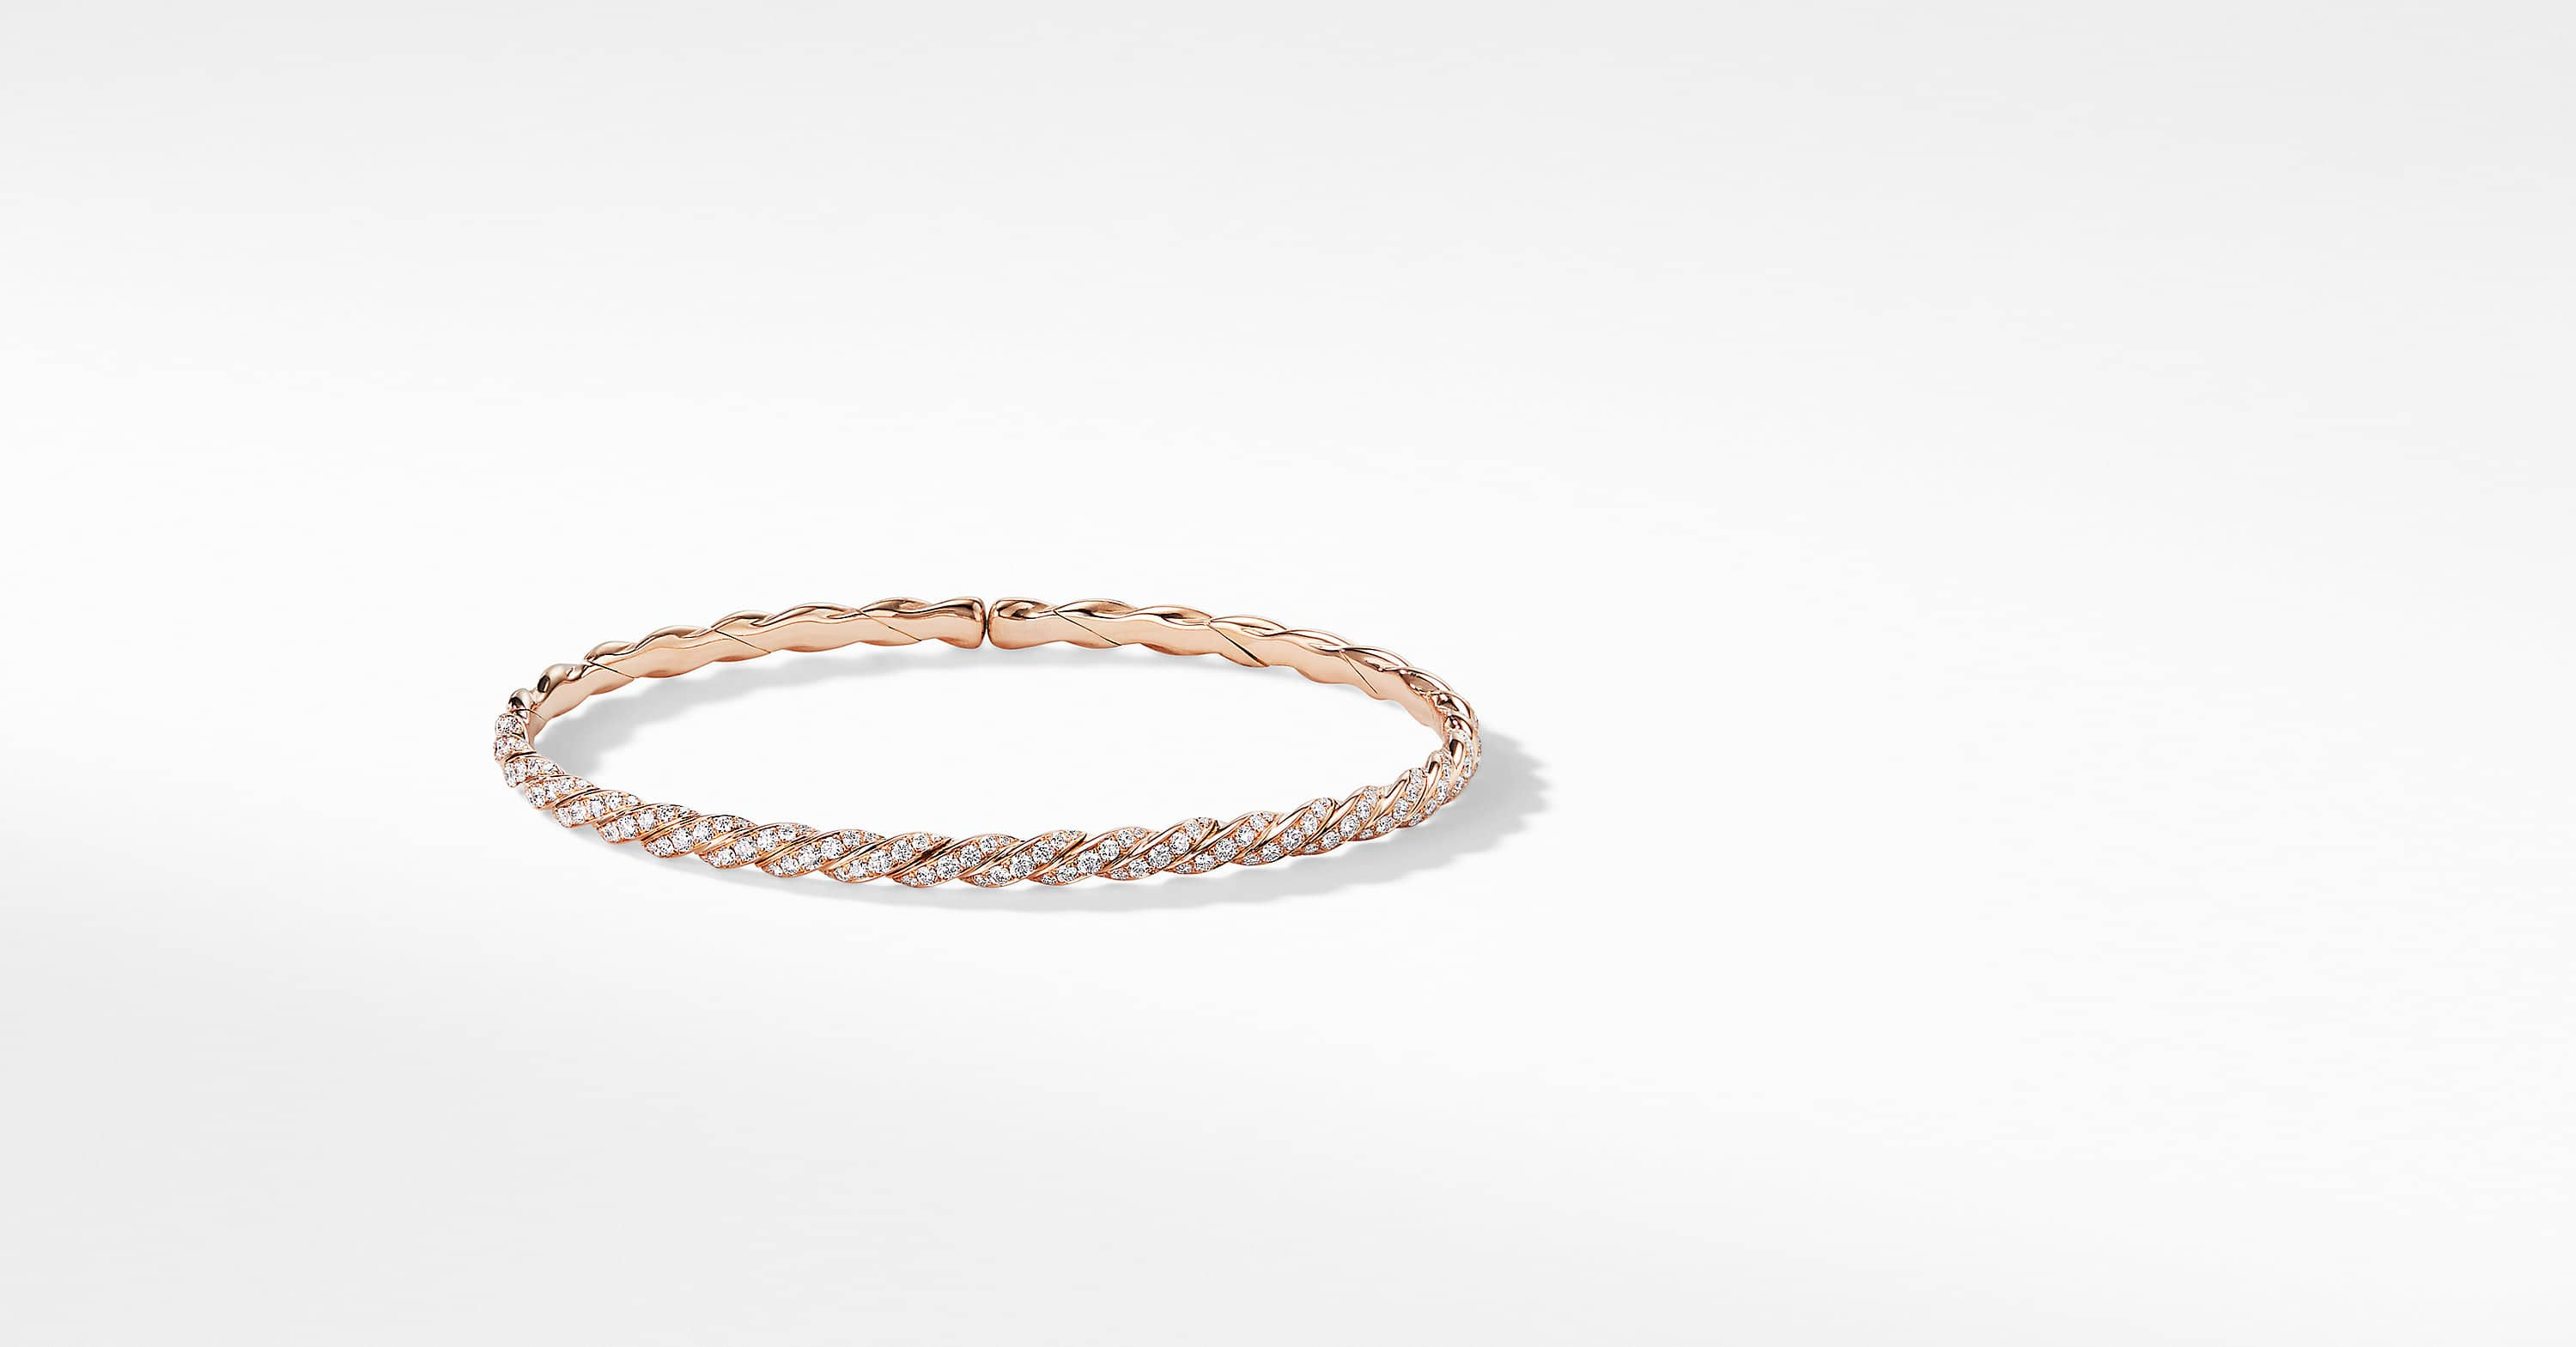 Pavéflex Single Row Bracelet with Diamonds in 18K Rose Gold